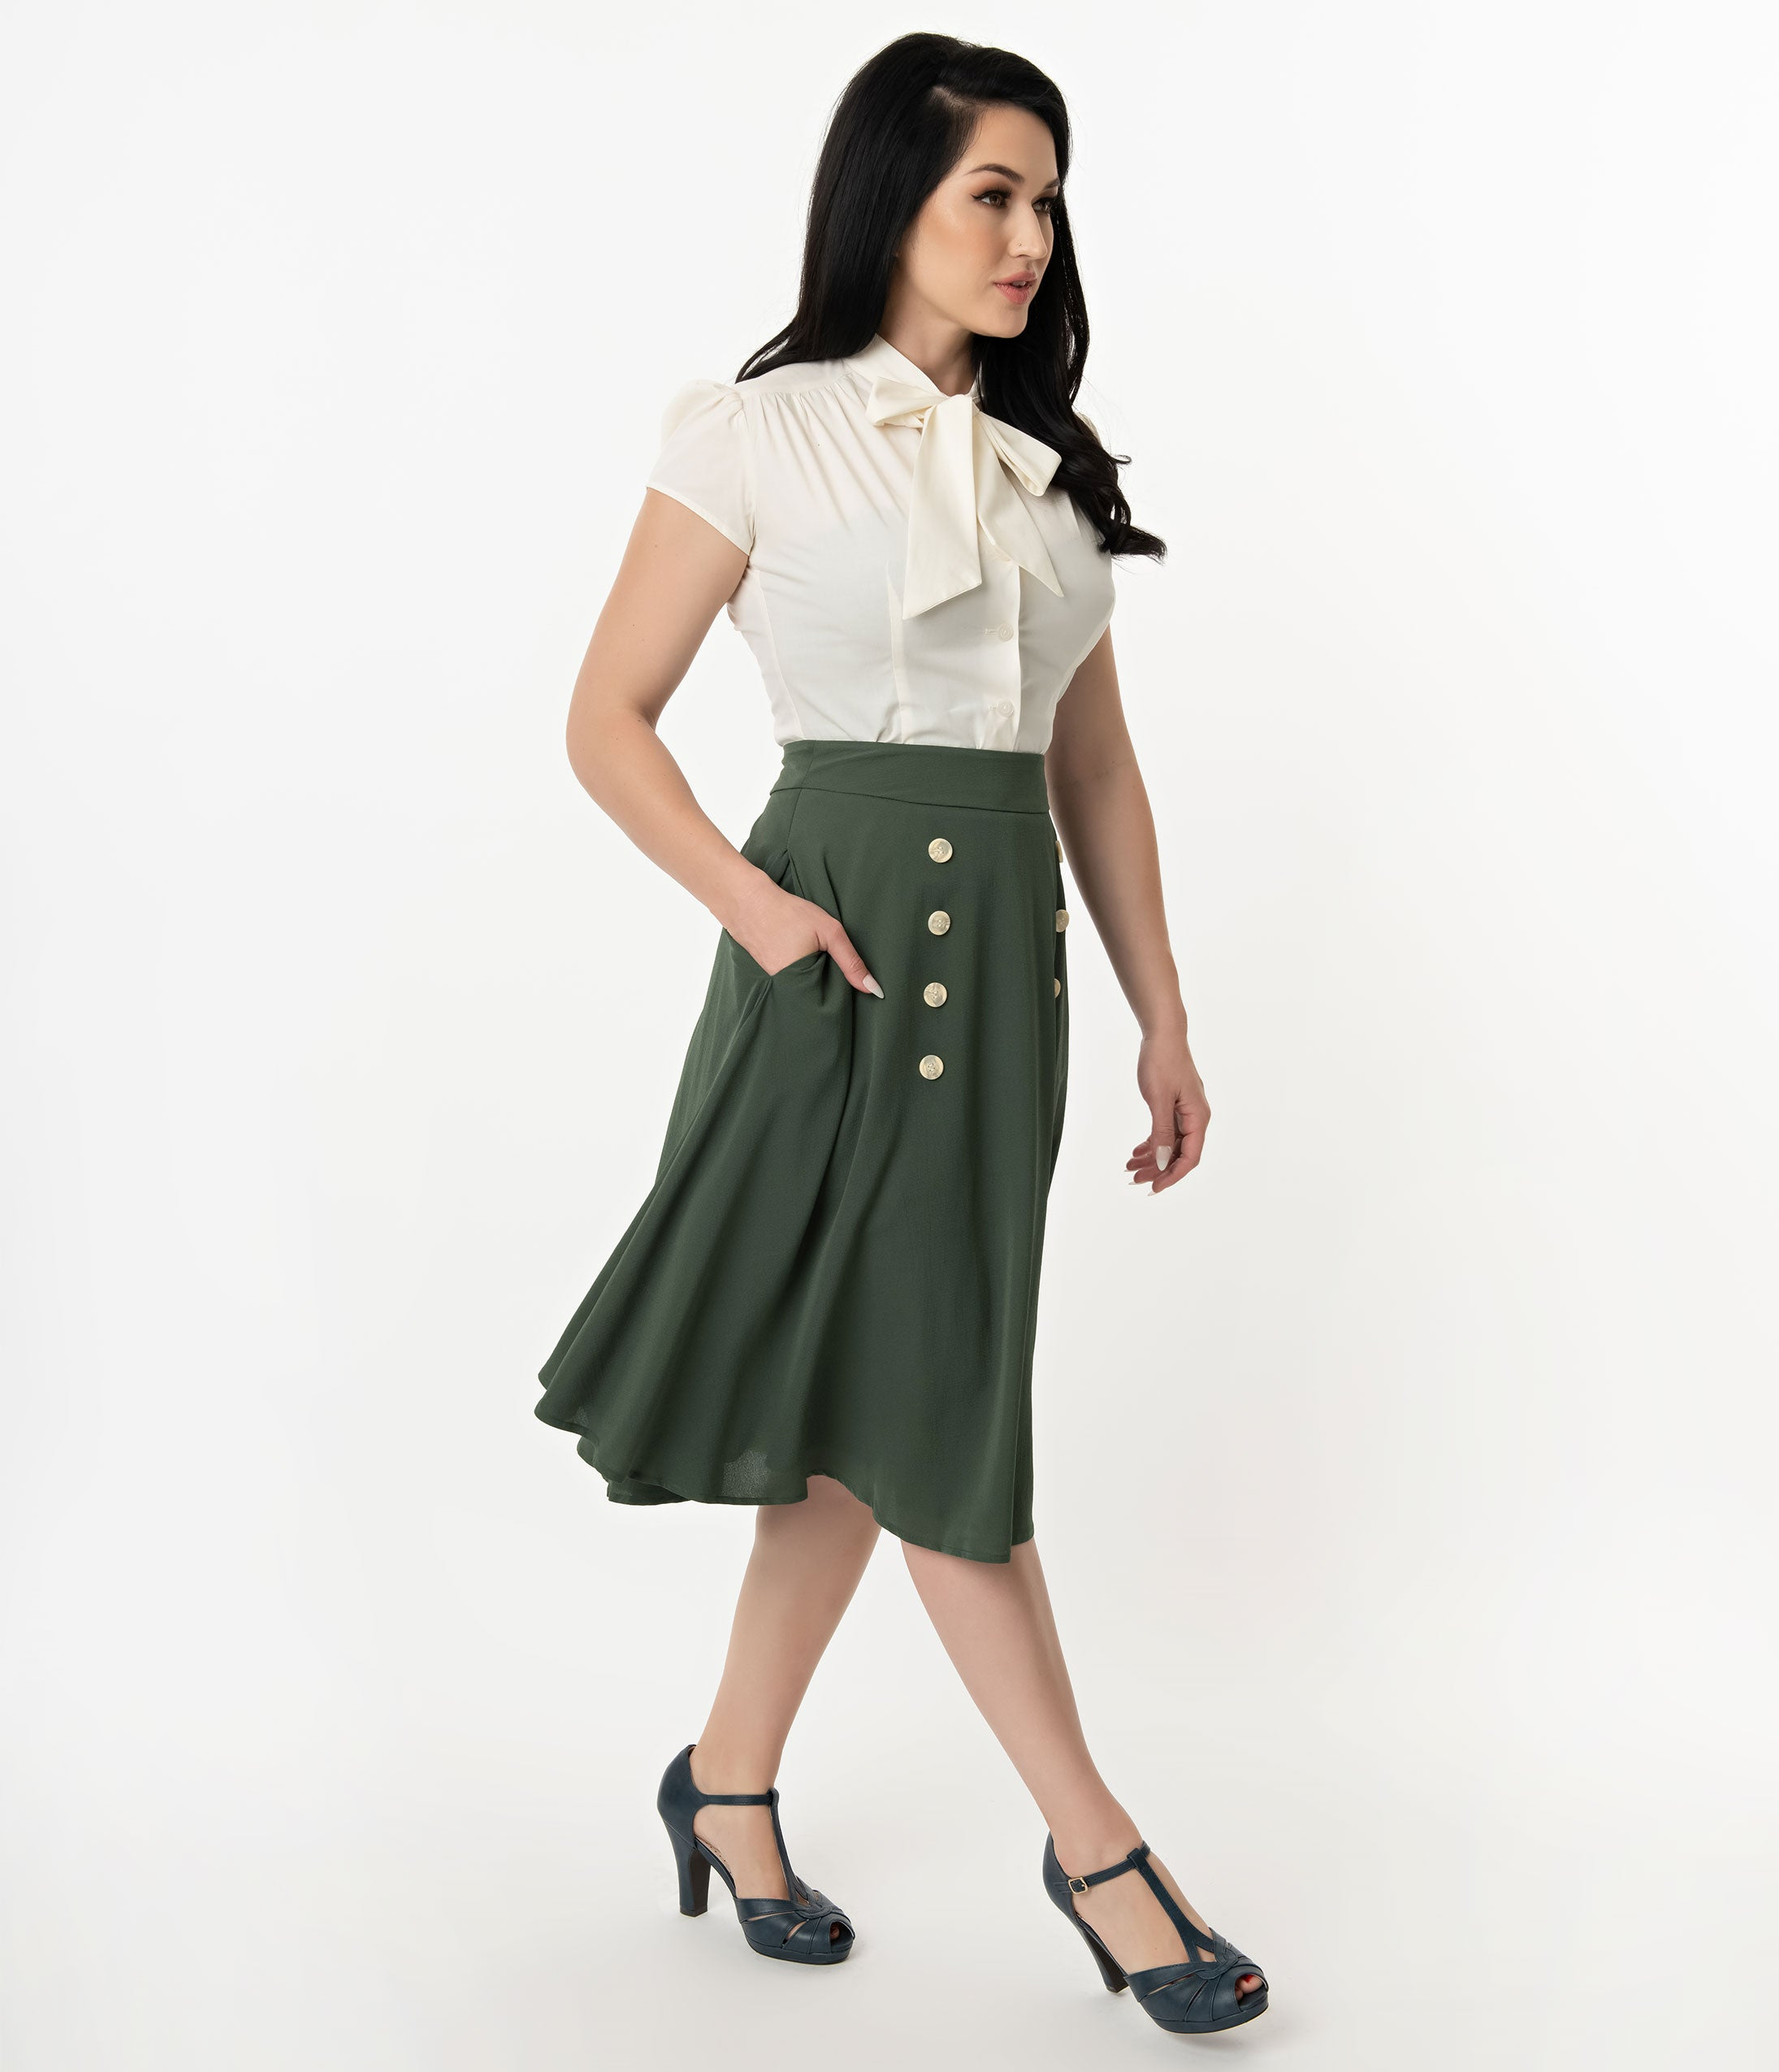 Retro Skirts: Vintage, Pencil, Circle, & Plus Sizes 1950S Style Forest Green Crepe Cute As A Button High Waist Swing Skirt $48.00 AT vintagedancer.com